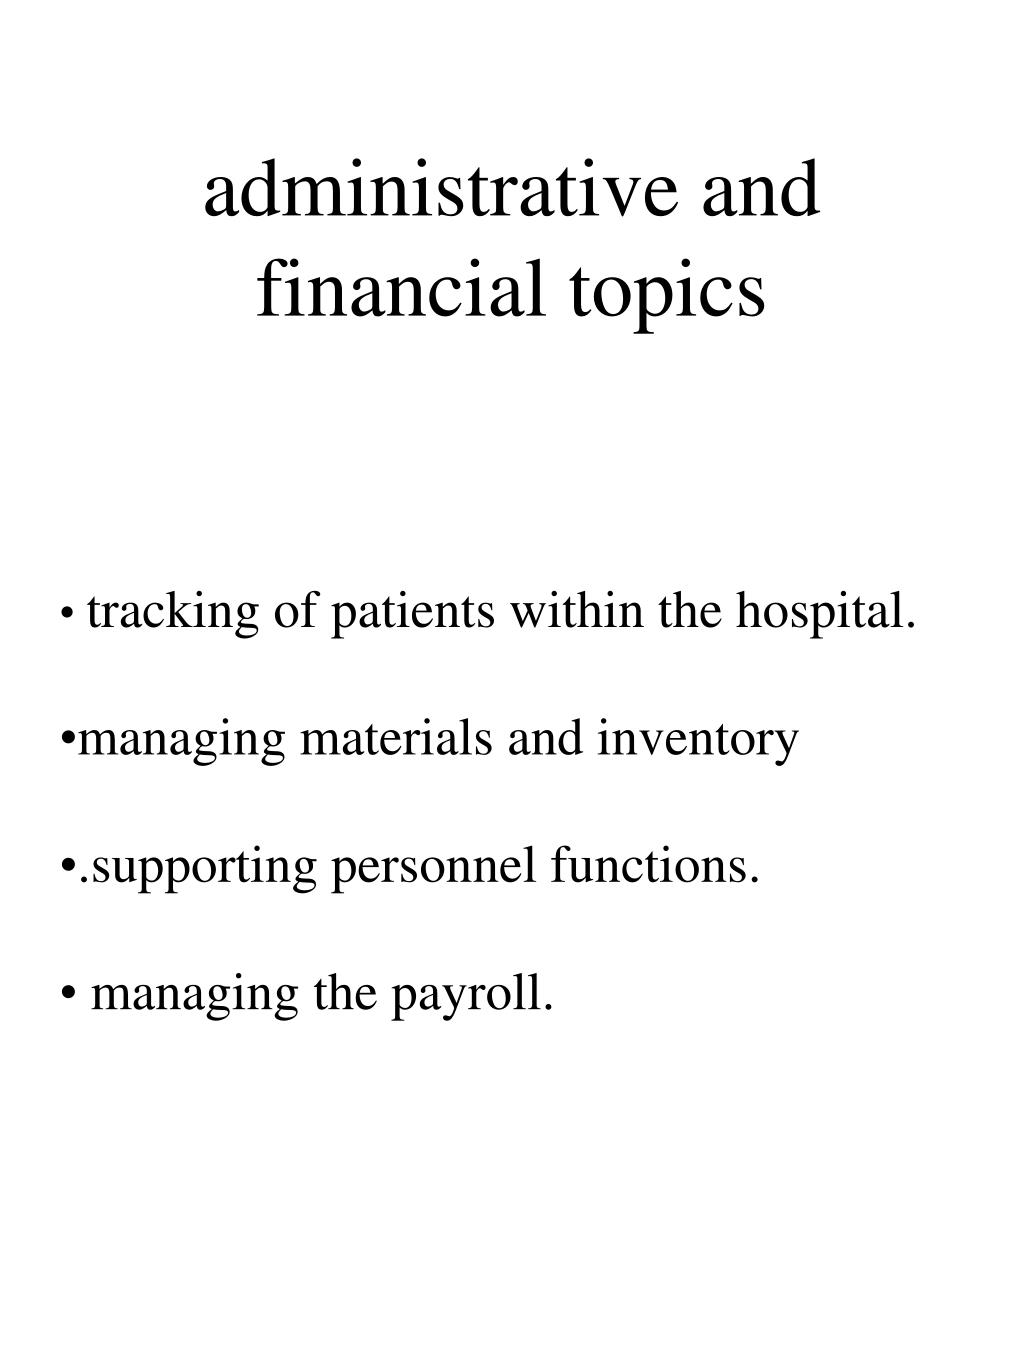 administrative and financial topics